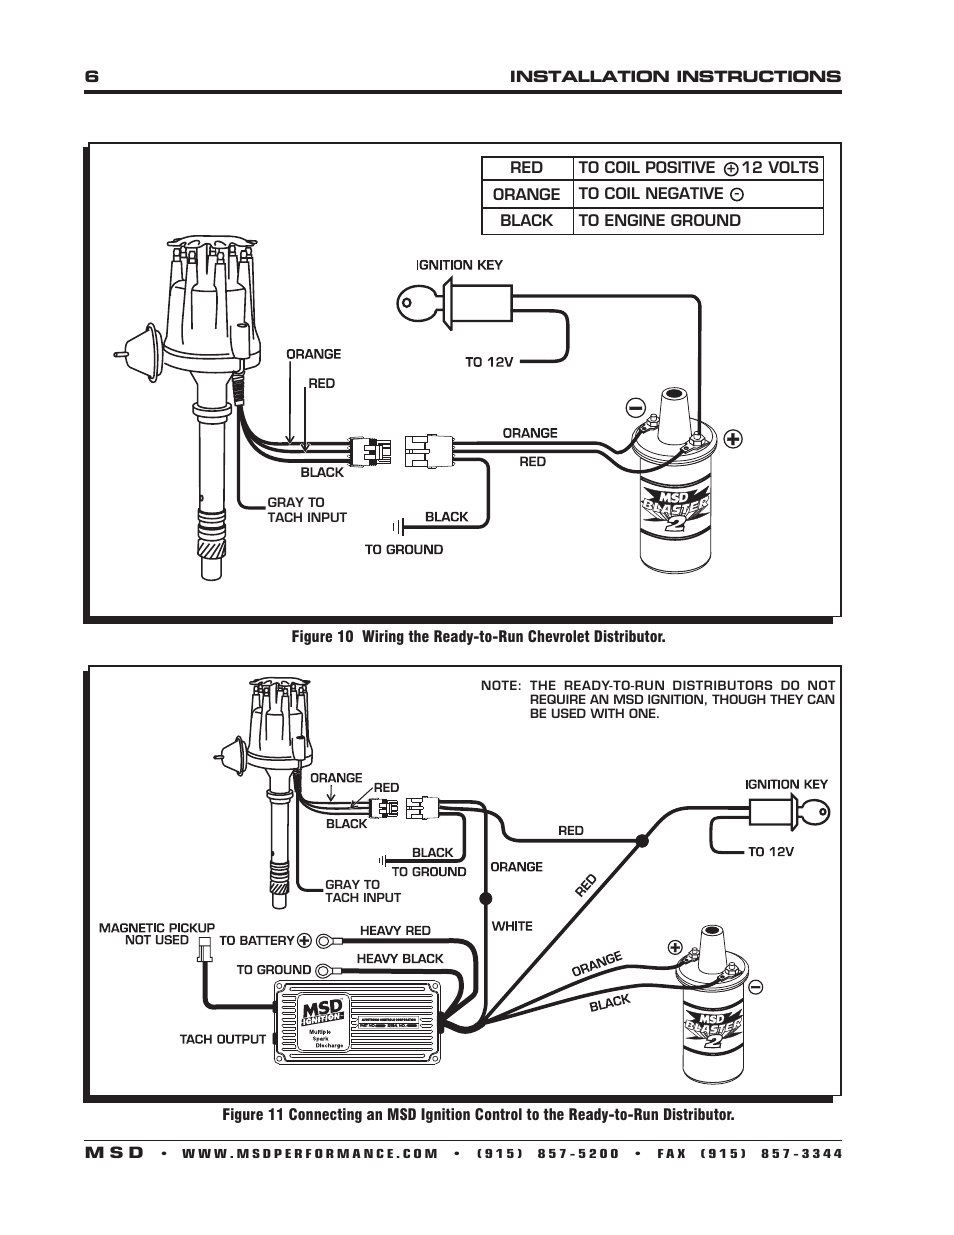 medium resolution of msd 8360 chevy v8 w internal module distributor installation user manual page 6 8 also for 8393 chevy 348 409 ready to run distributor installation